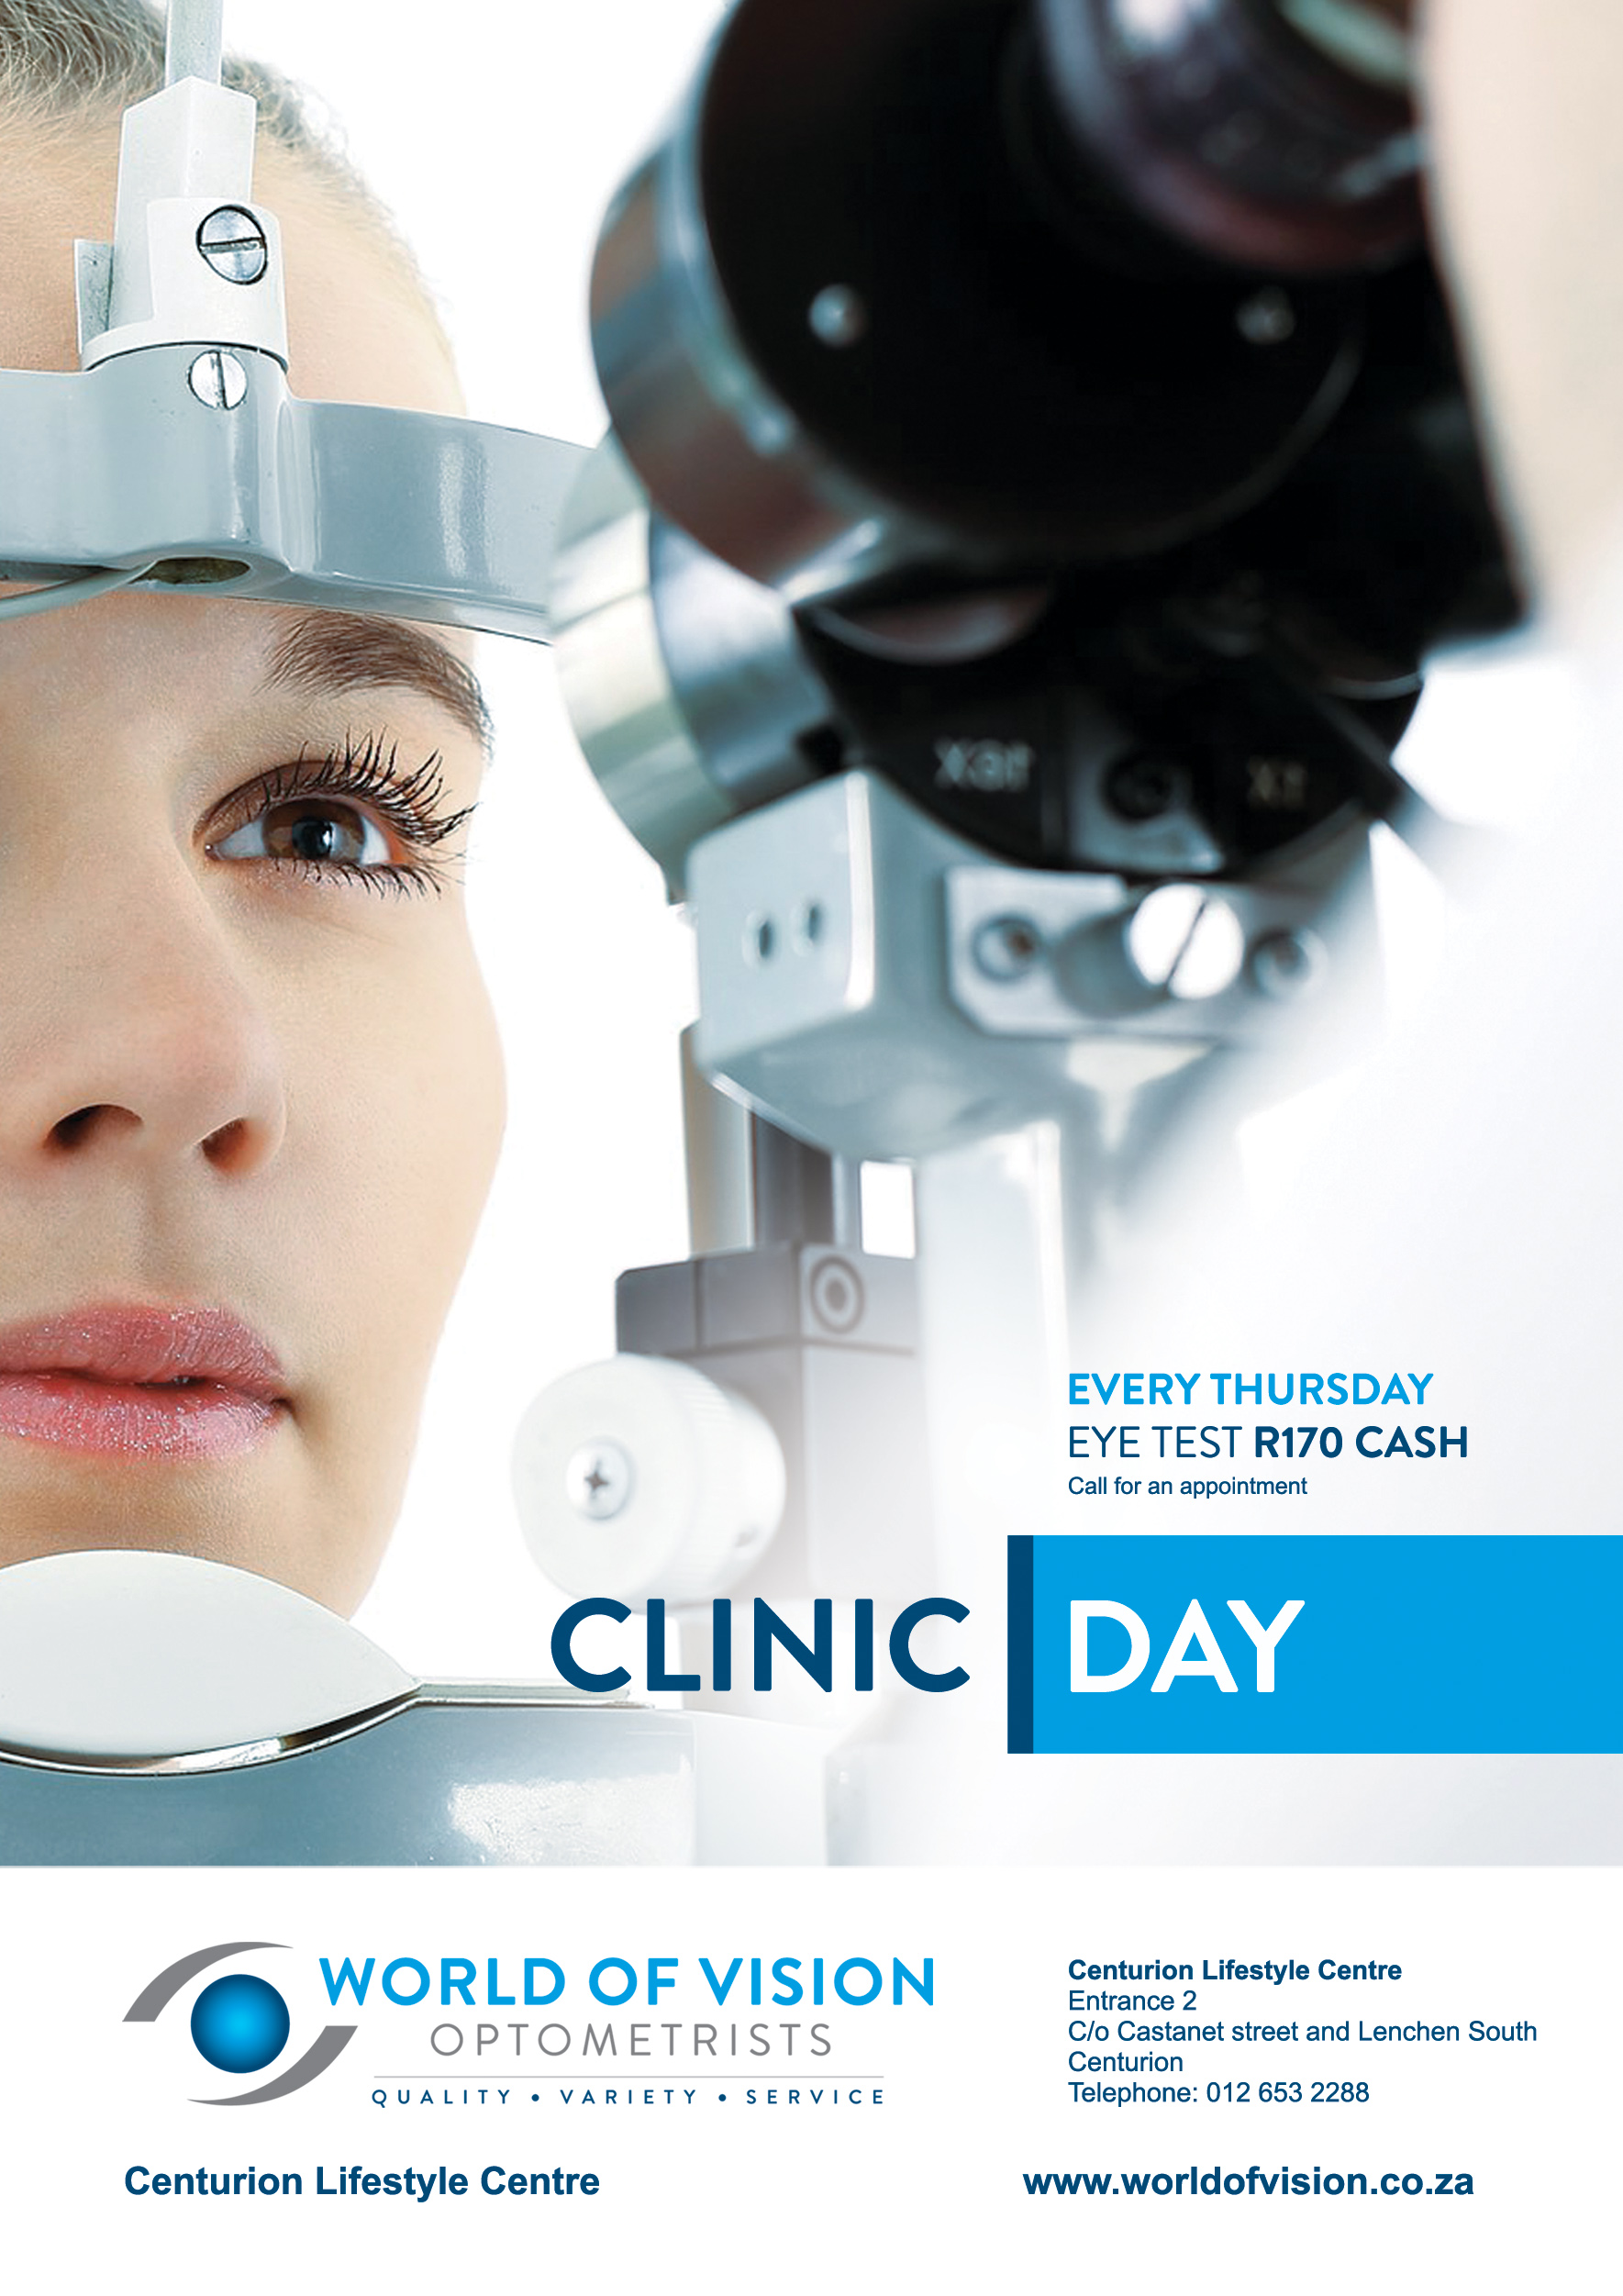 Clinic day